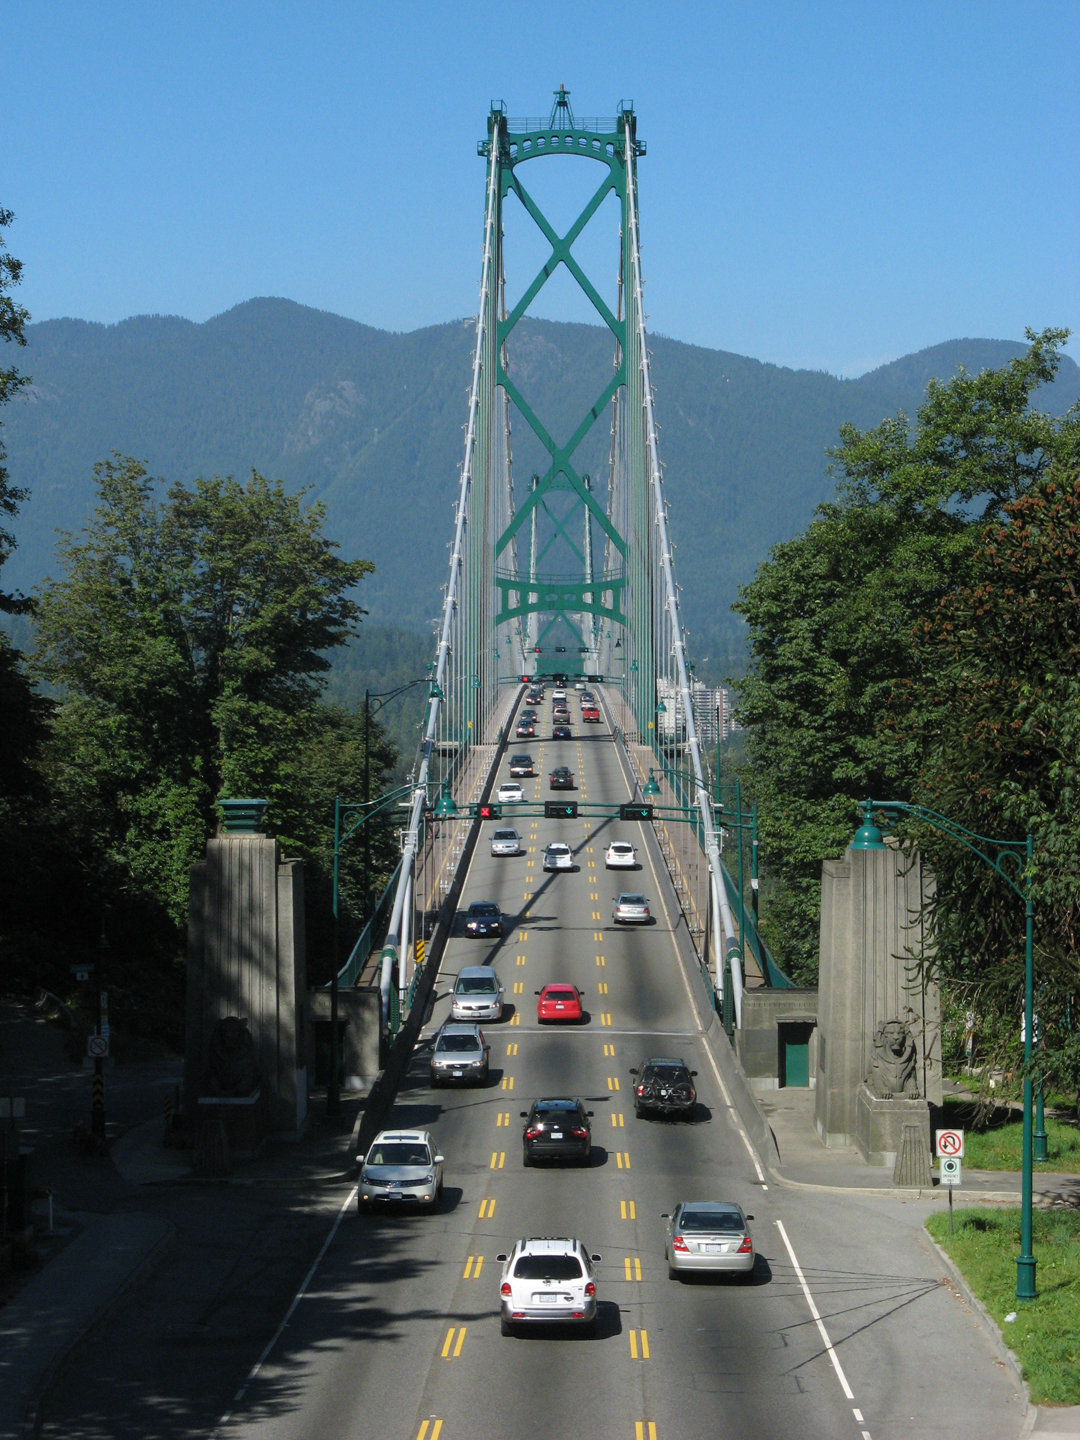 Today's traffic snarl on the Lions Gate, bc 2 dudes climbed the bridge for a photo-op